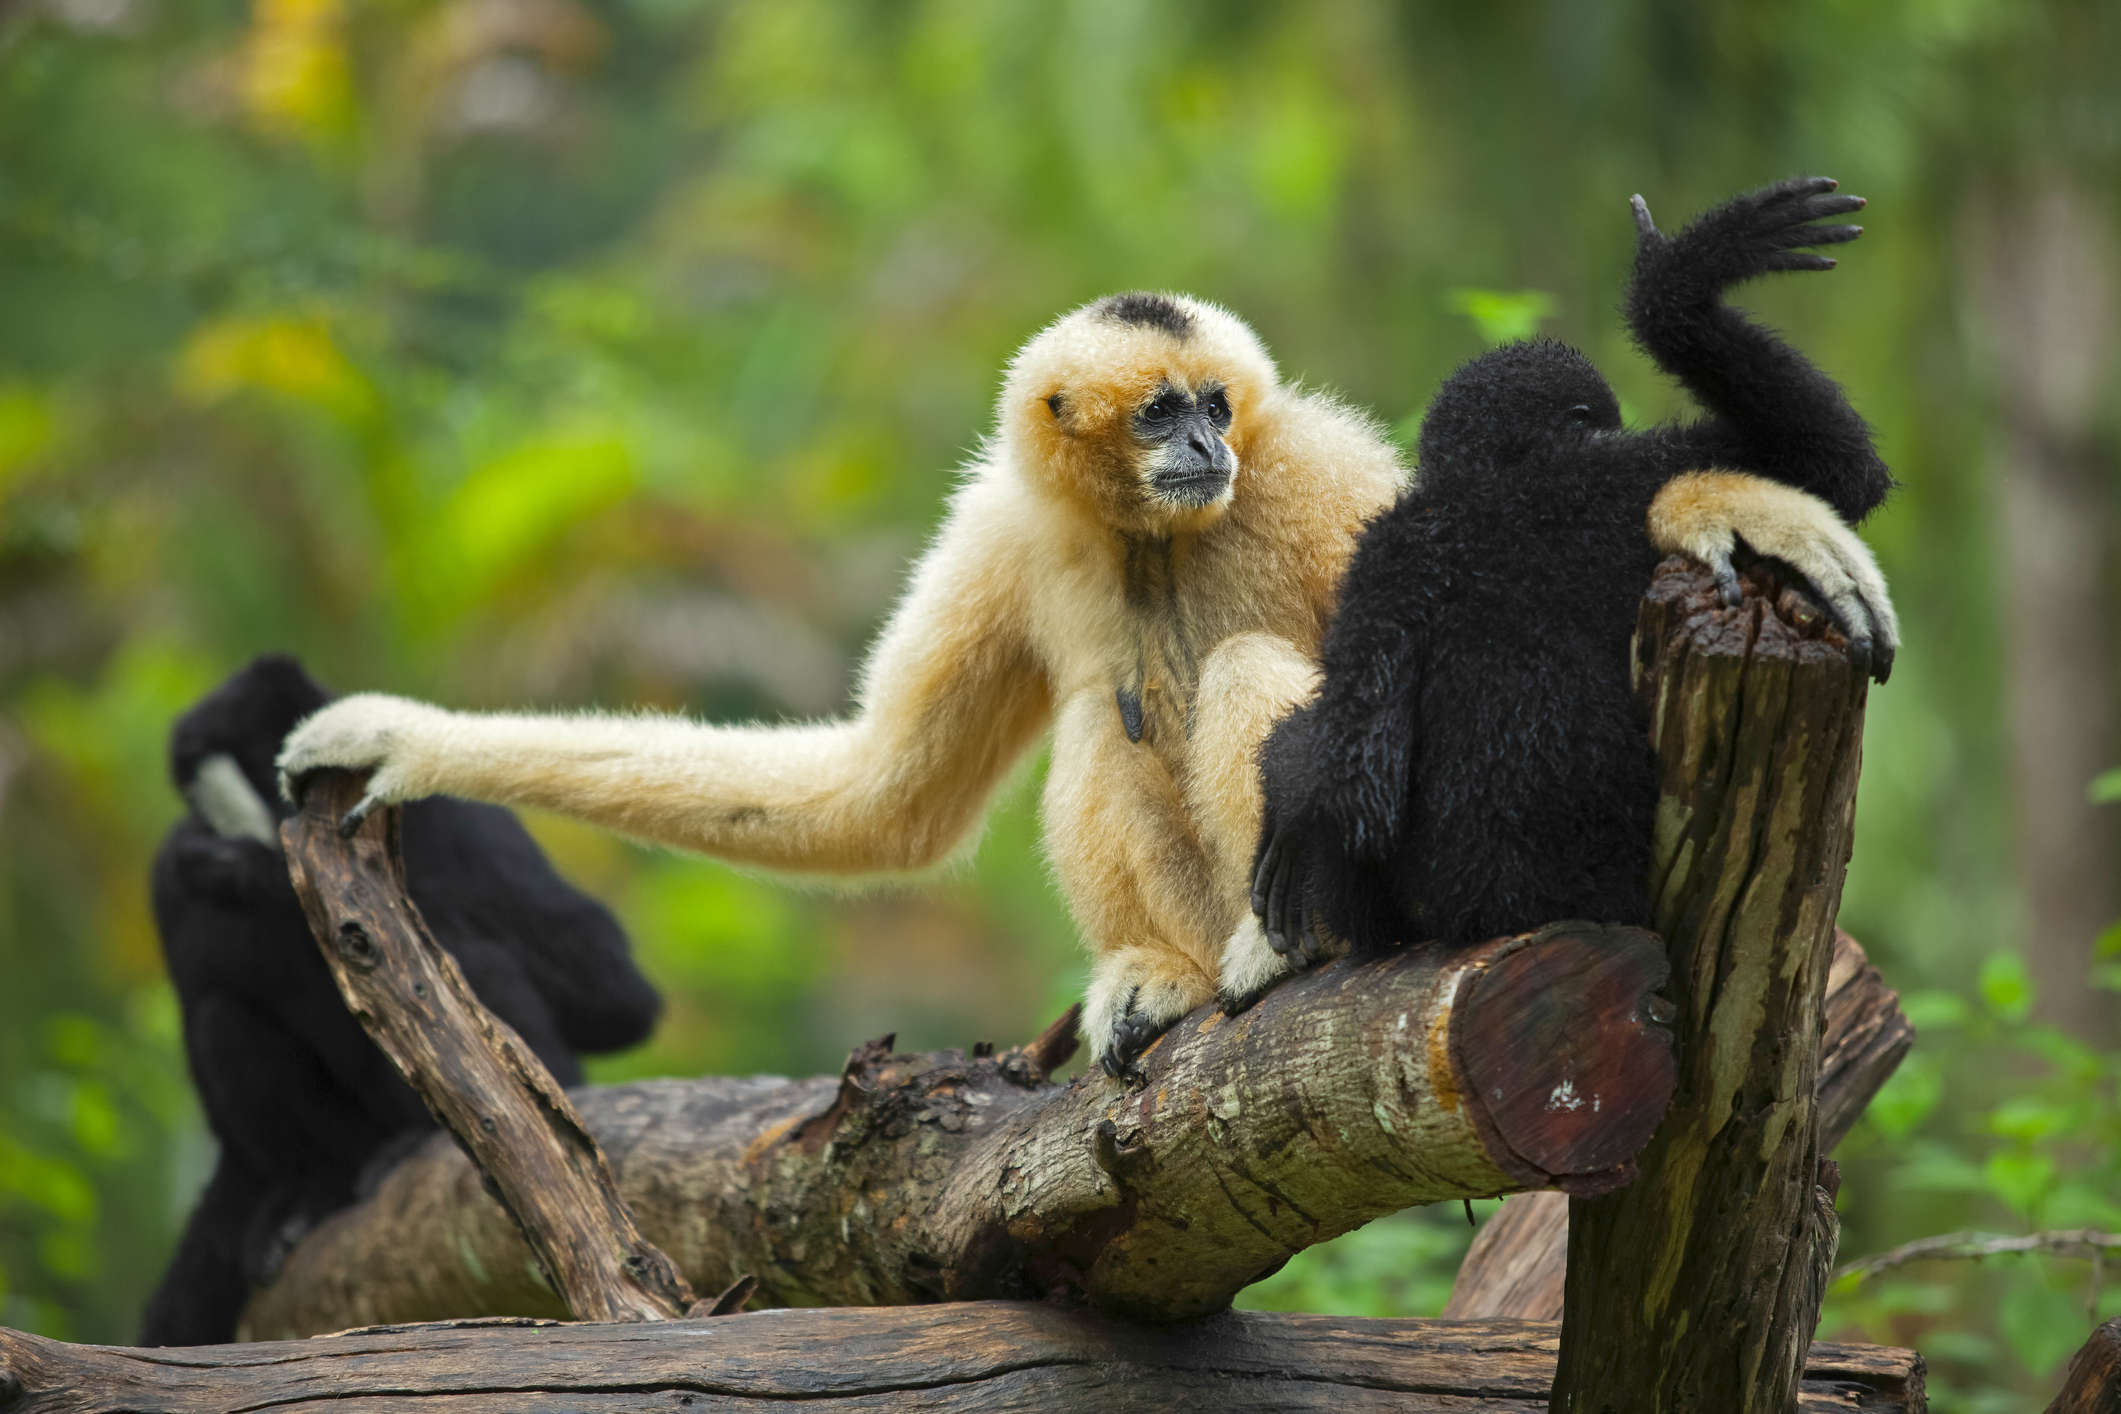 Hoollongapar Gibbon Sanctuary, where you can spot India's only ape species